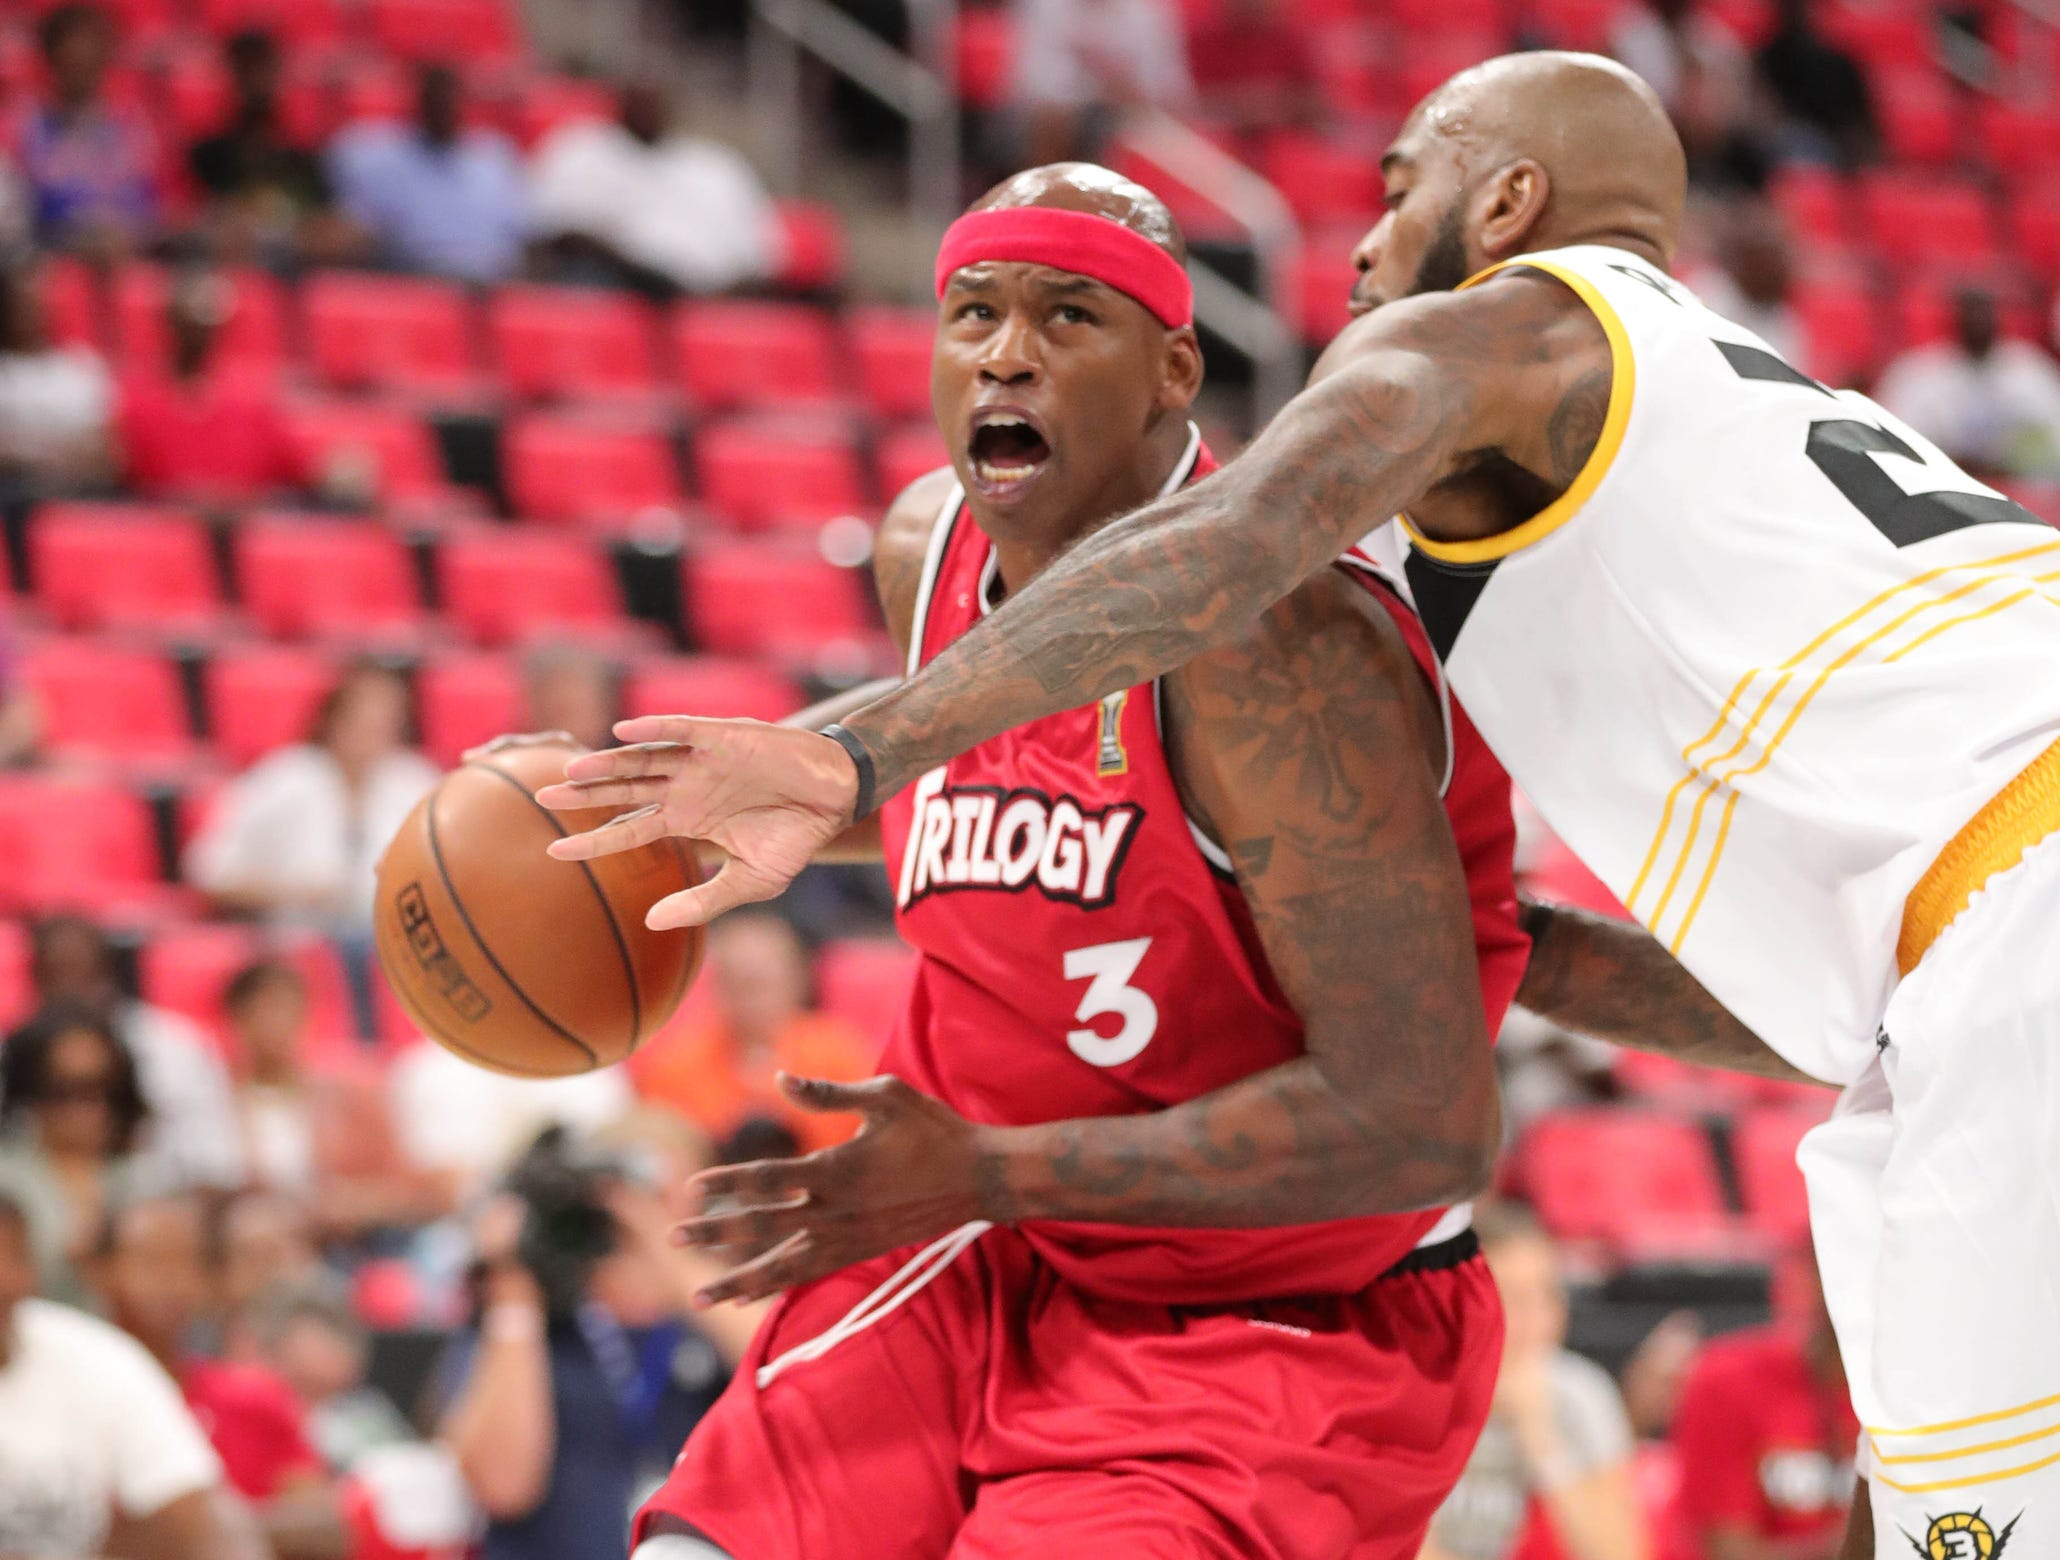 Trilogy's Al Harrington drives against Killer 3s Josh Powell during BIG3 action on Friday, July 13, 2018 at Little Caesars Arena in Detroit.